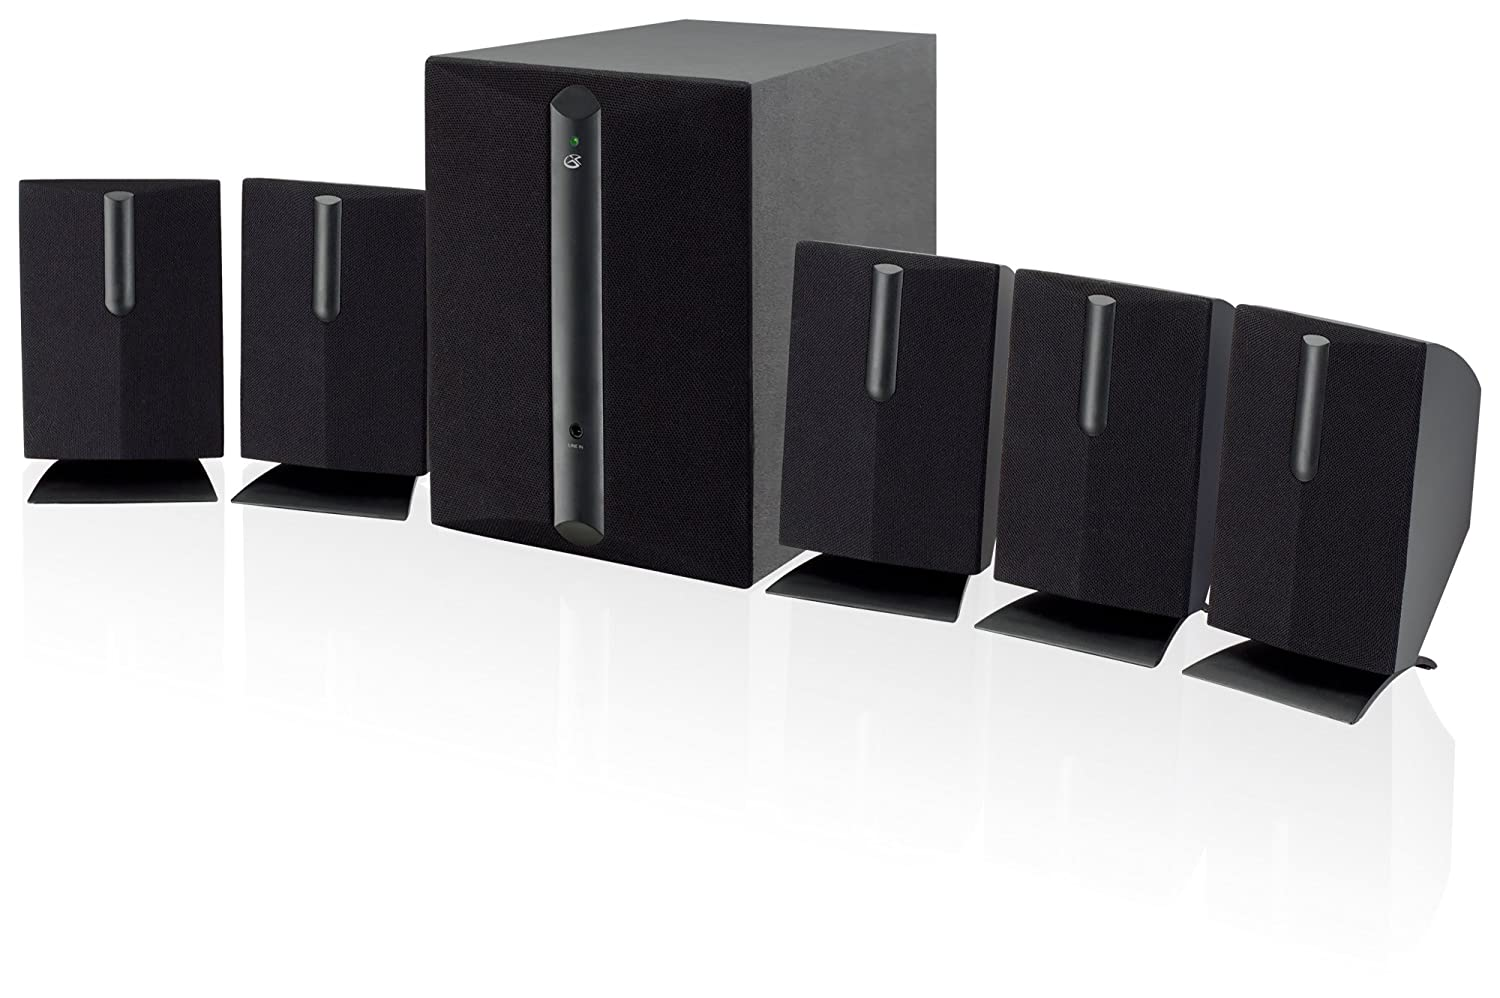 ilive ht050b 5 1 channel home theater speaker system black. Black Bedroom Furniture Sets. Home Design Ideas